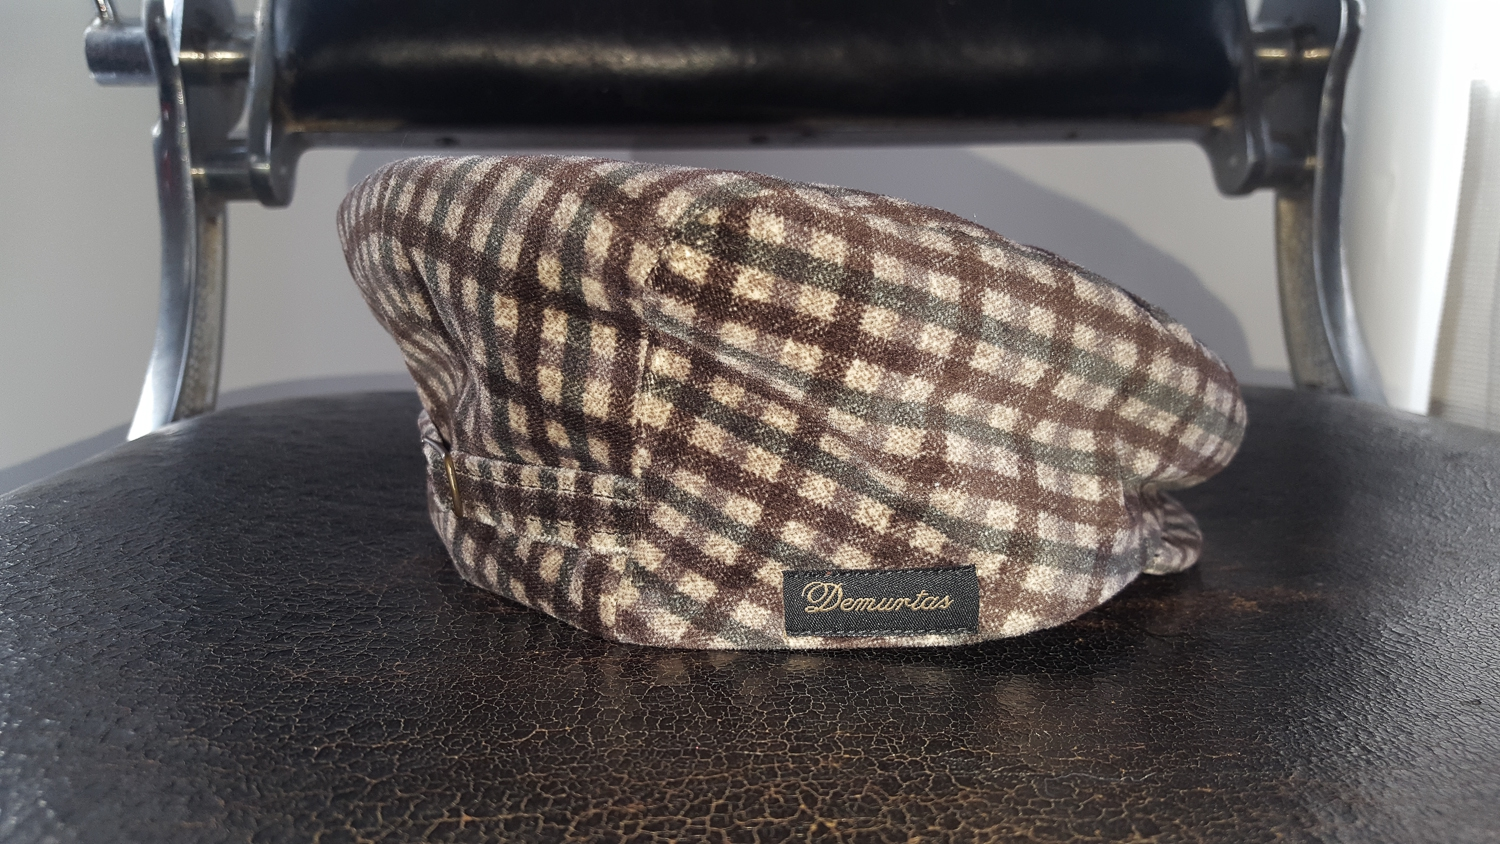 The Sardinian Chapter: Berrettificio Demurtas  The flat cap is not only Sicilian or British